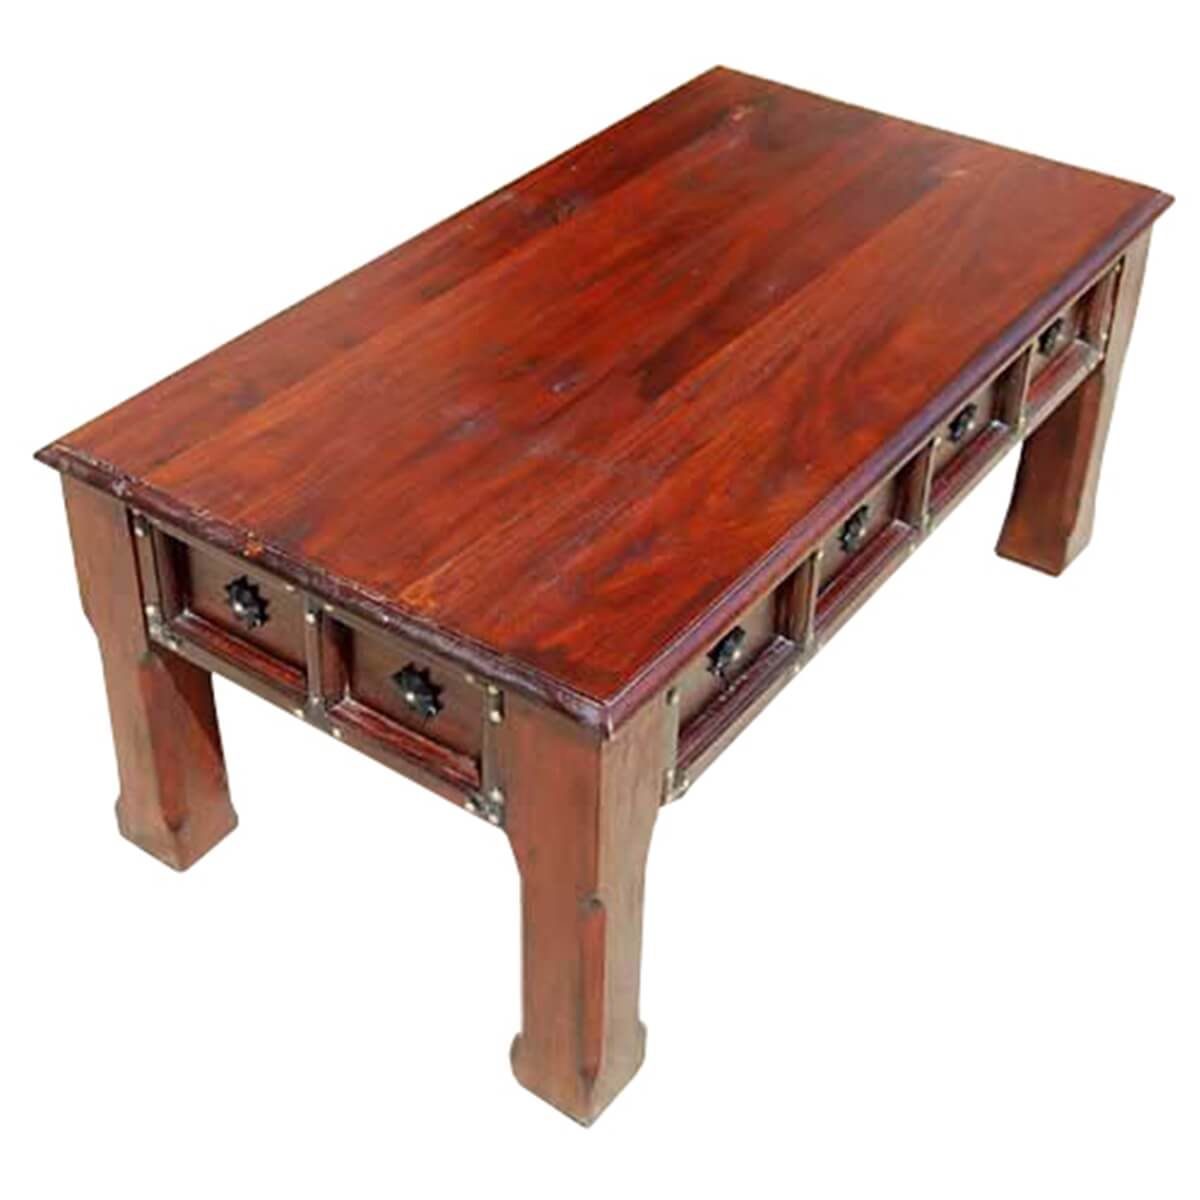 Rustic Solid Wood Occasional Cocktail Coffee Table